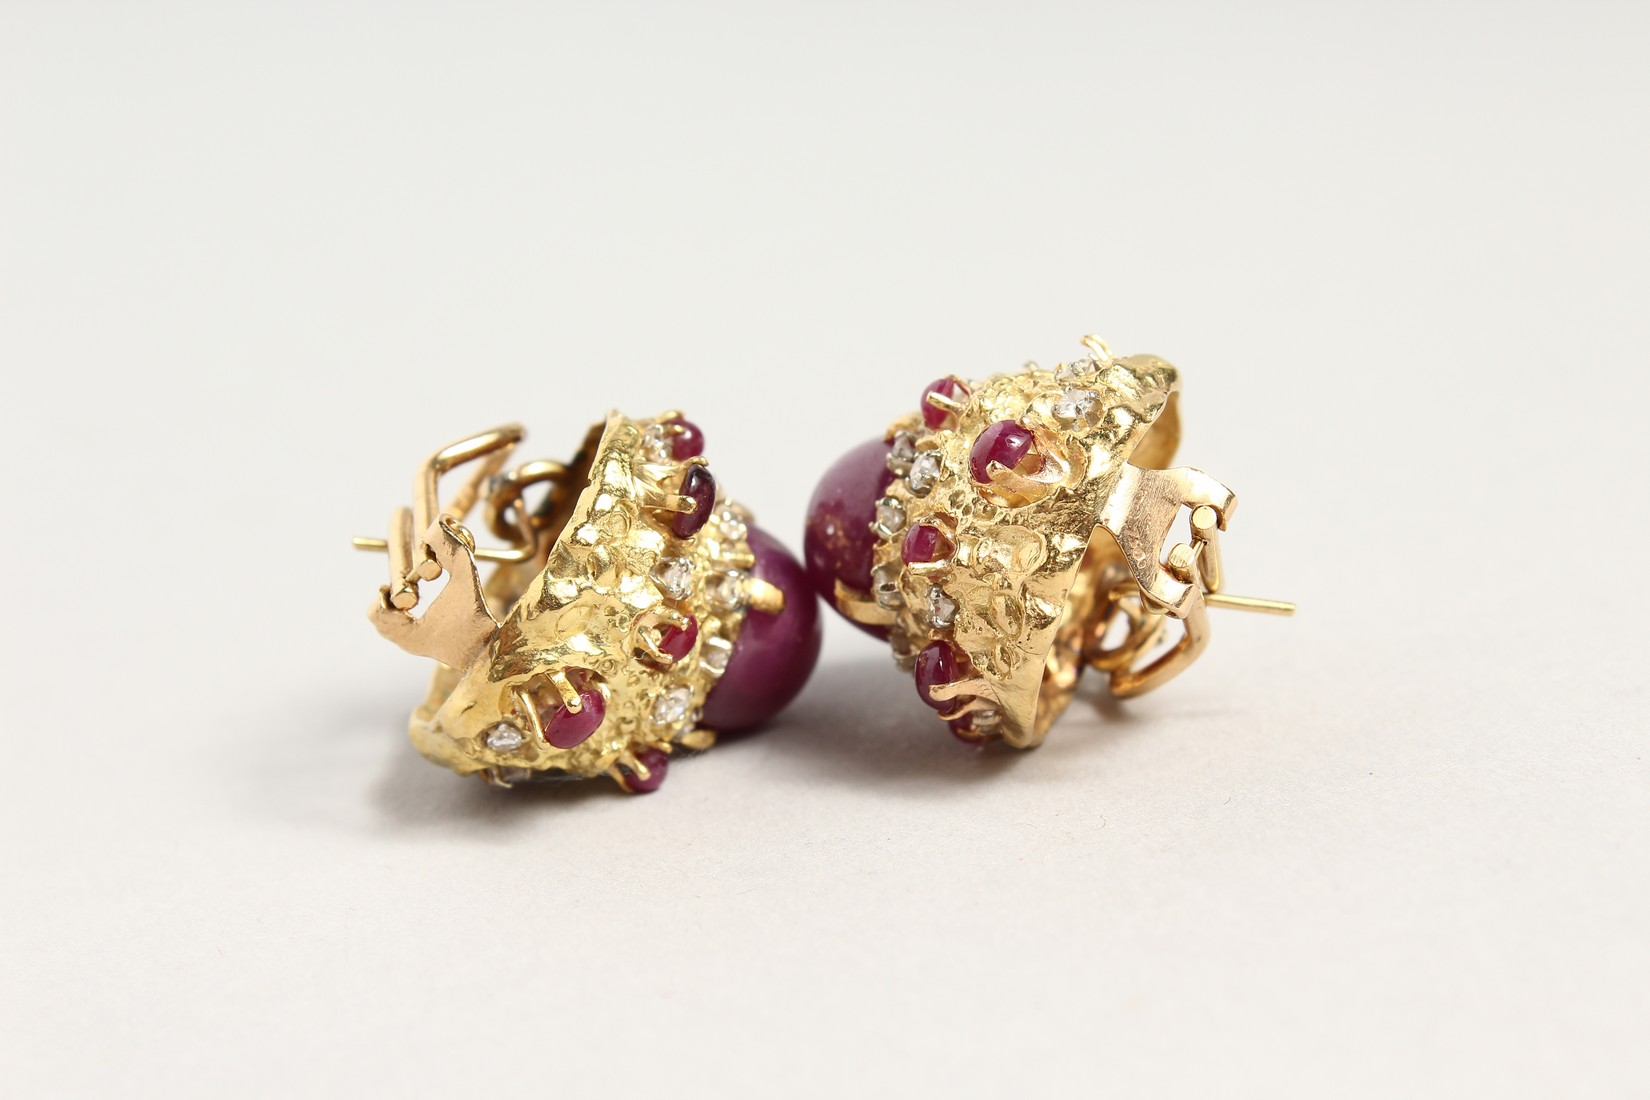 A SUPERB PAIR OF 18CT GOLD CARBOUCHON RUBY AND DIAMOND CLIP EARRINGS. - Image 3 of 4